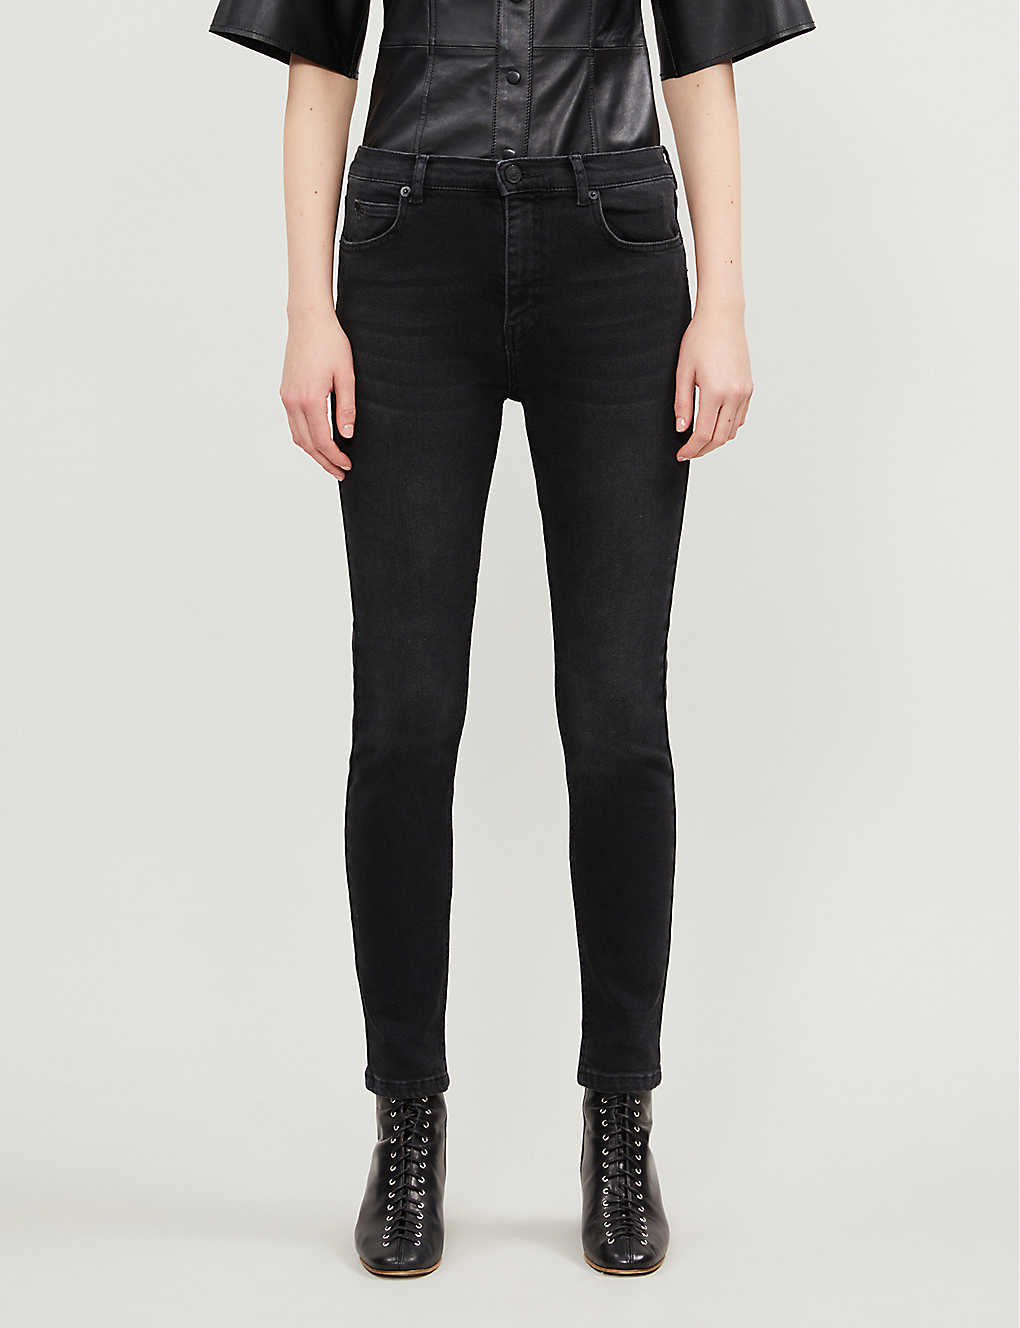 WHISTLES: Sculpted high-rise stretch-denim jeans